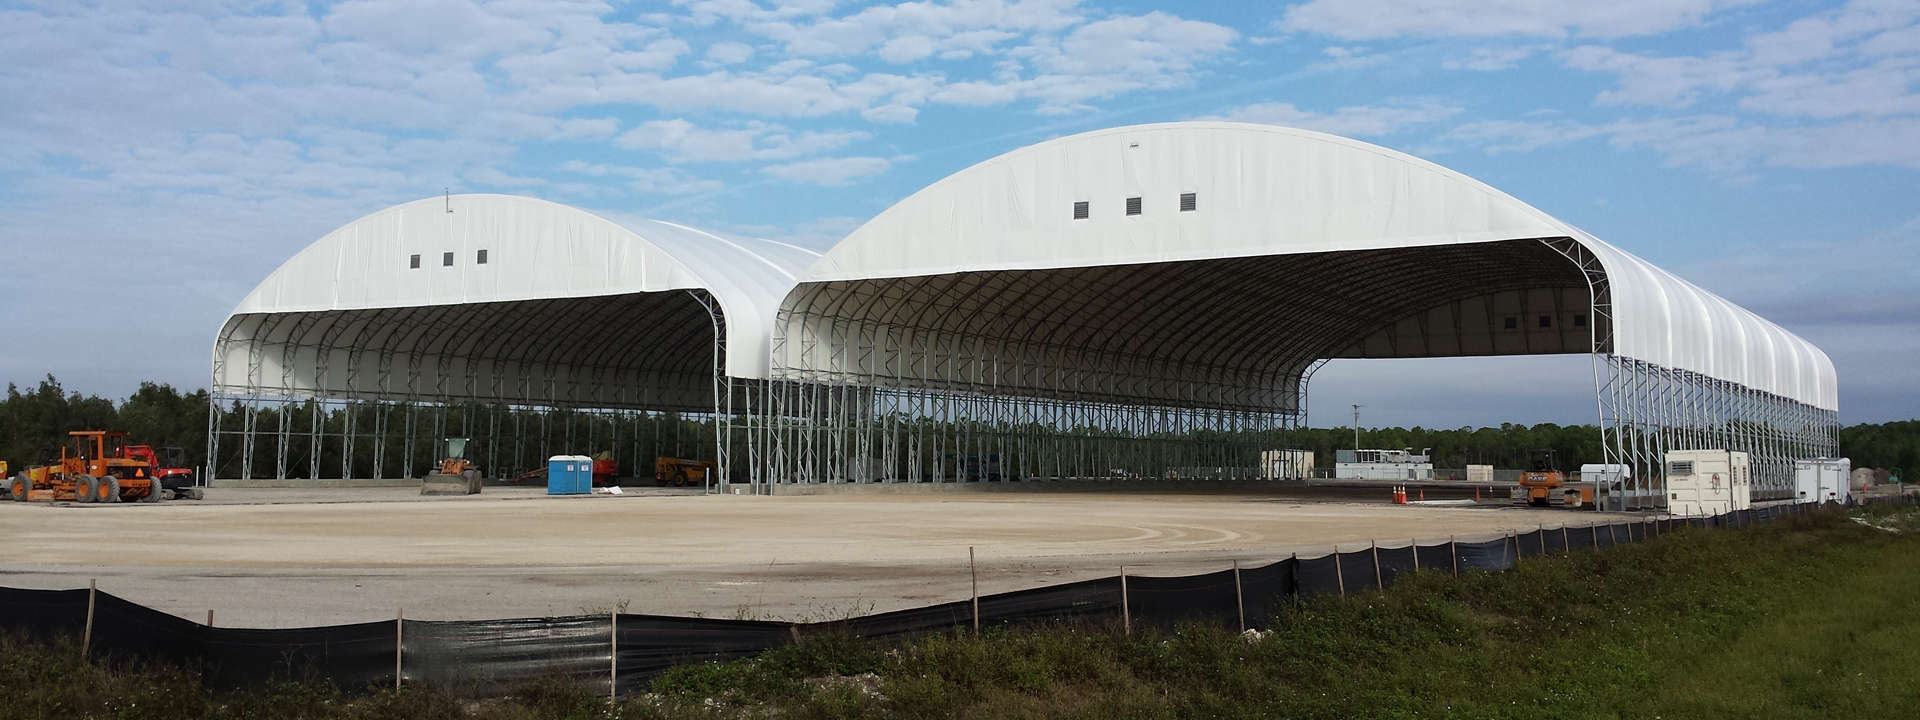 Fabric Tension Structures